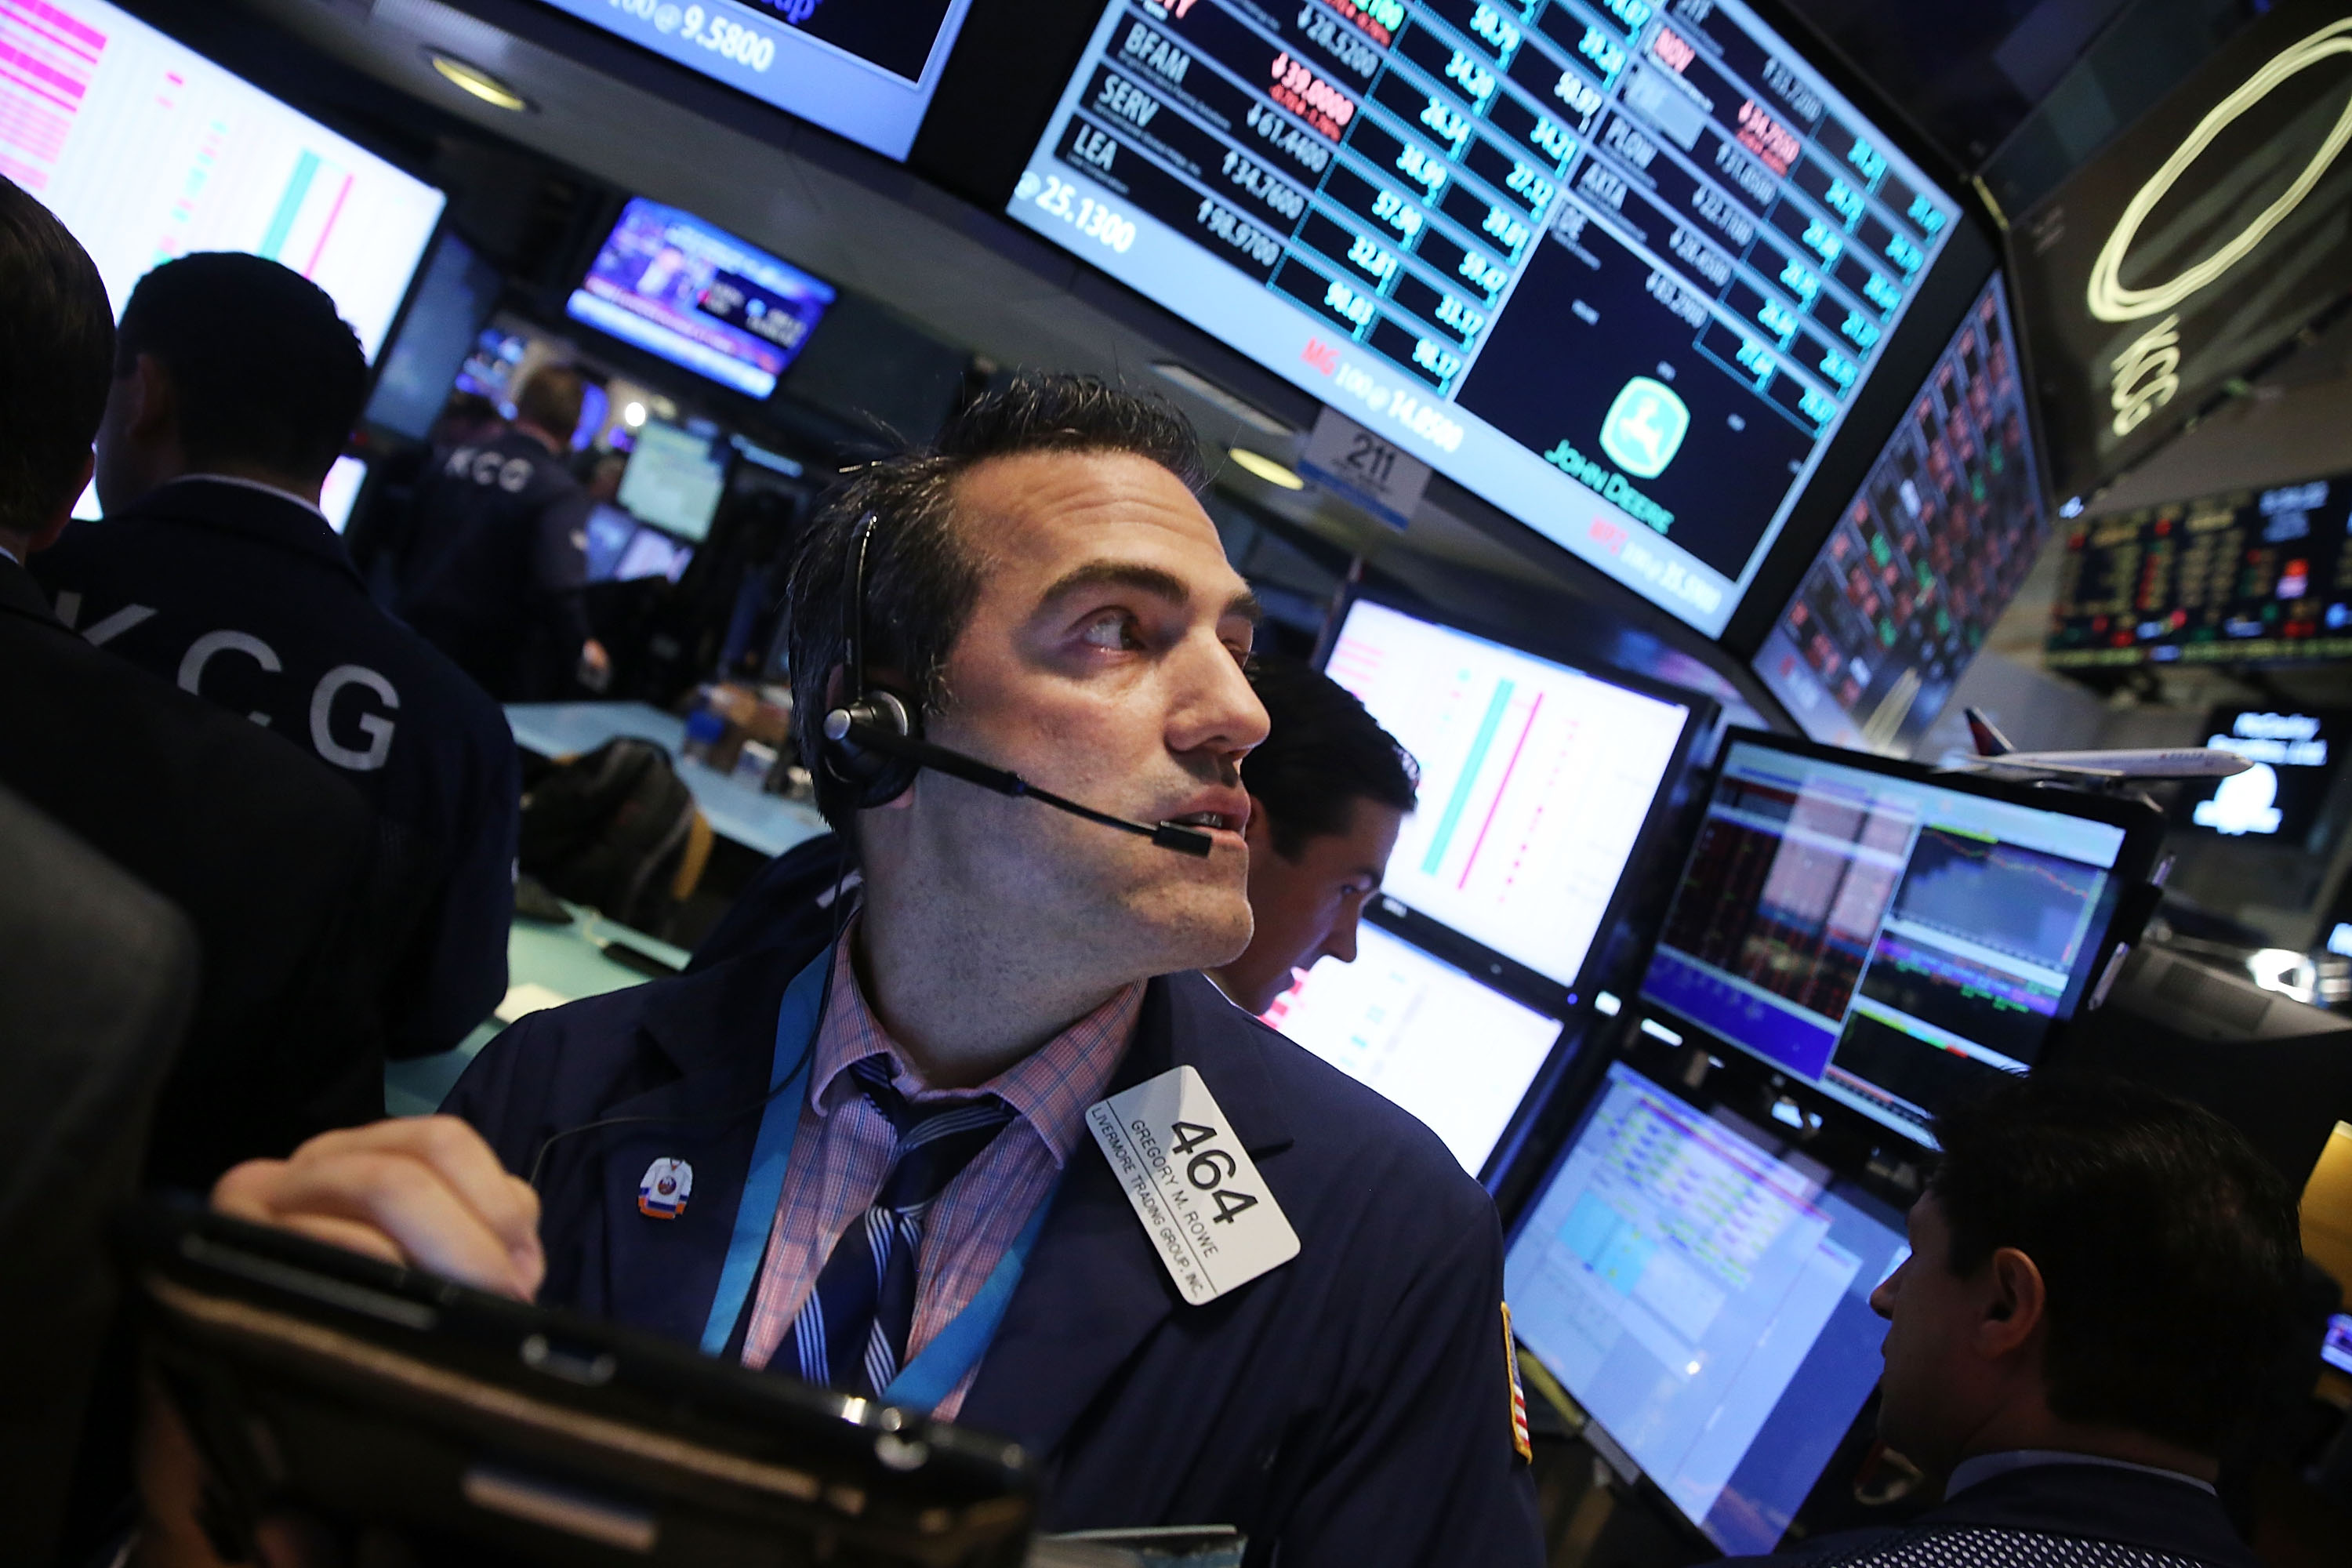 Traders work on the floor of the New York Stock Exchange (NYSE) on Aug. 24, 2015 in New York City.